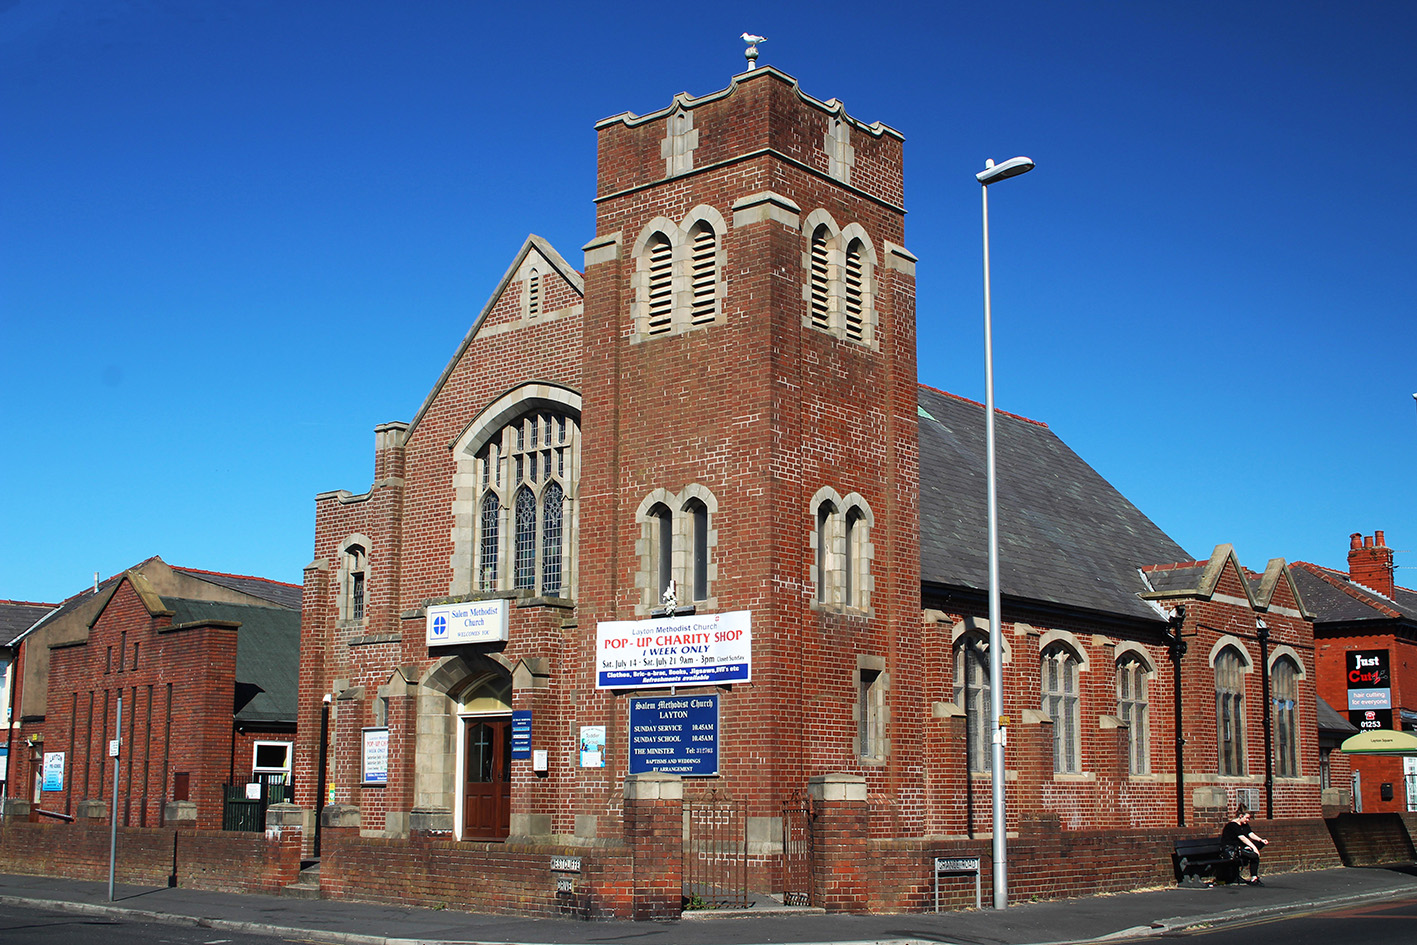 Photograph of Layton Methodist Church, taken from Talbot Road